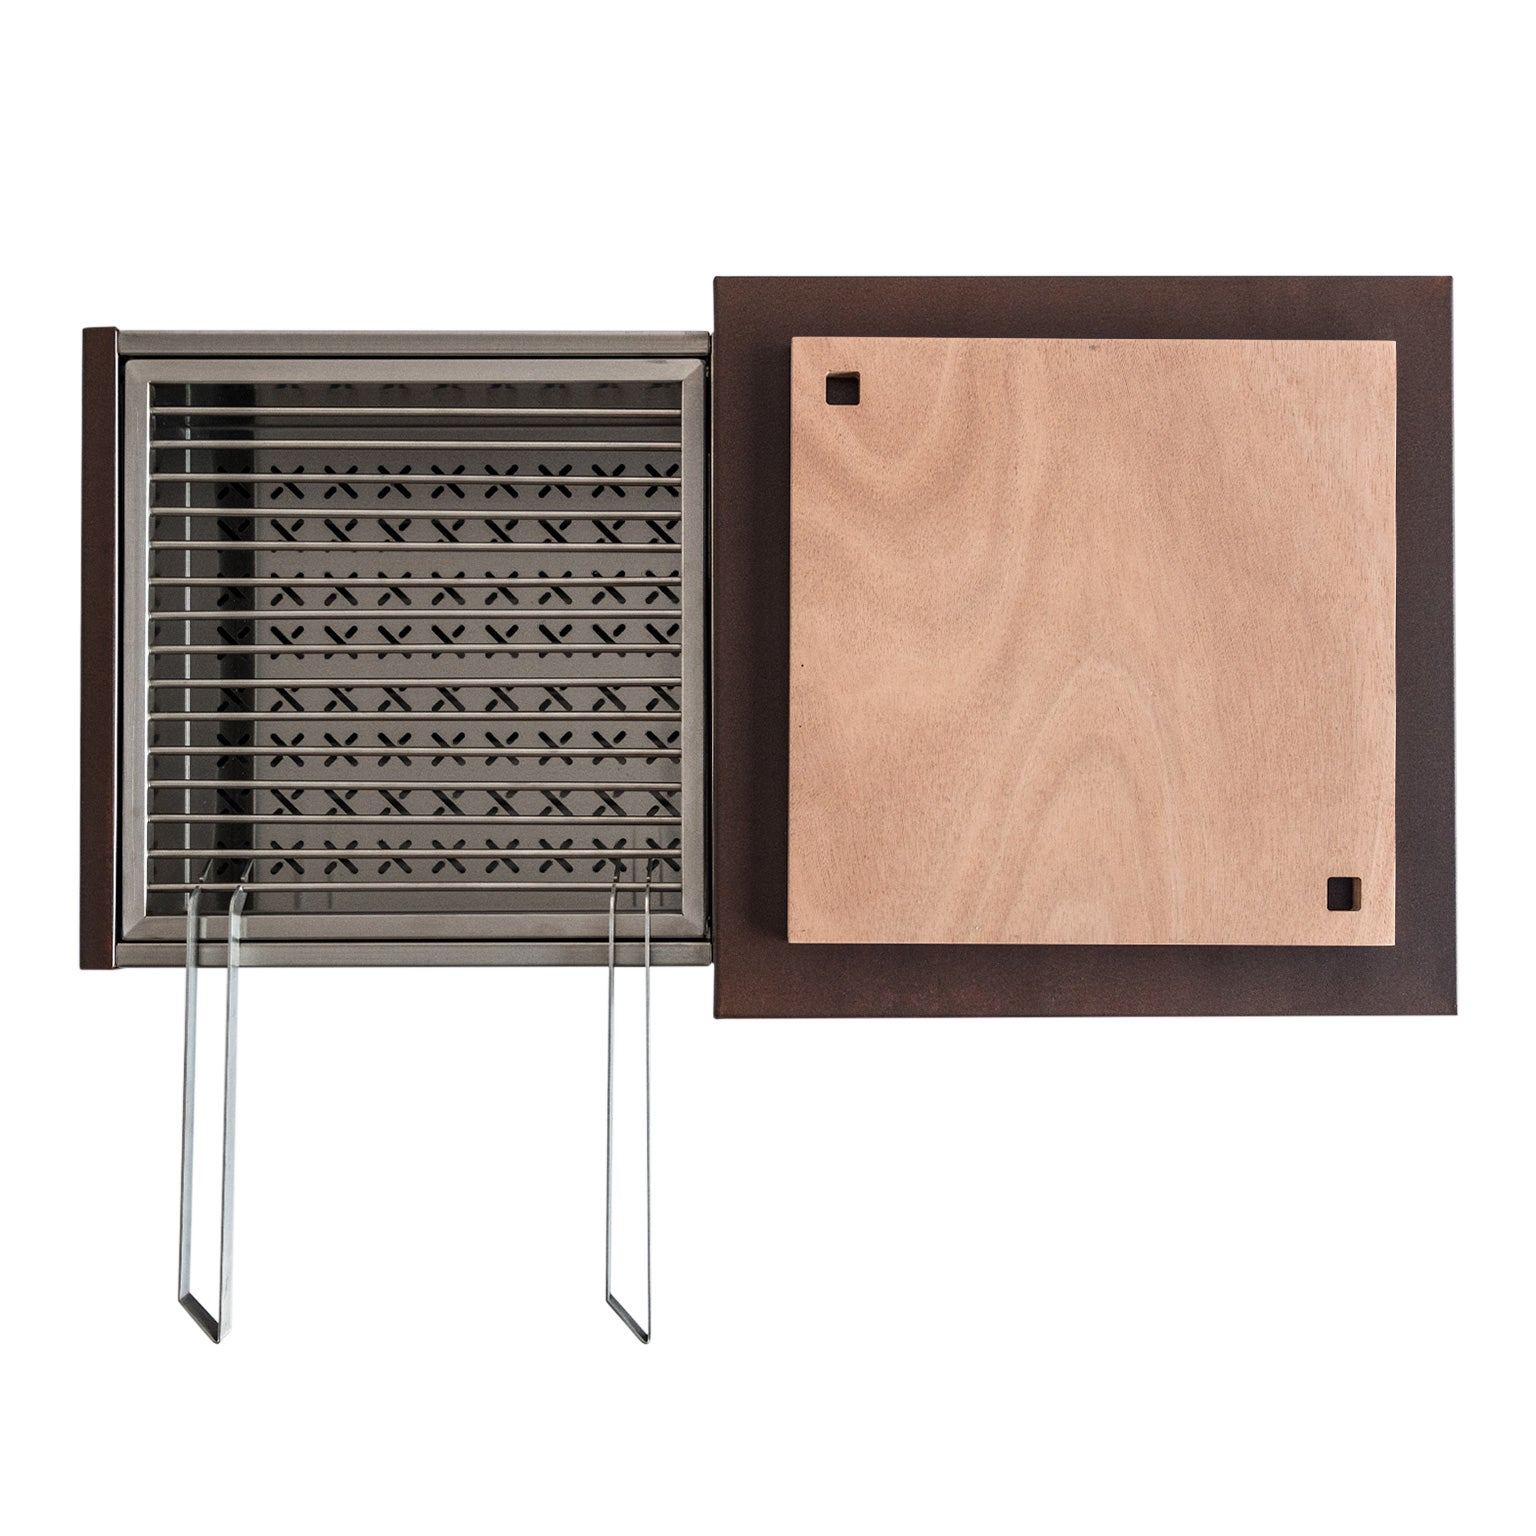 Contemporary Compact Garden Charcoal Barbecue with sliding grills, Snail Mono